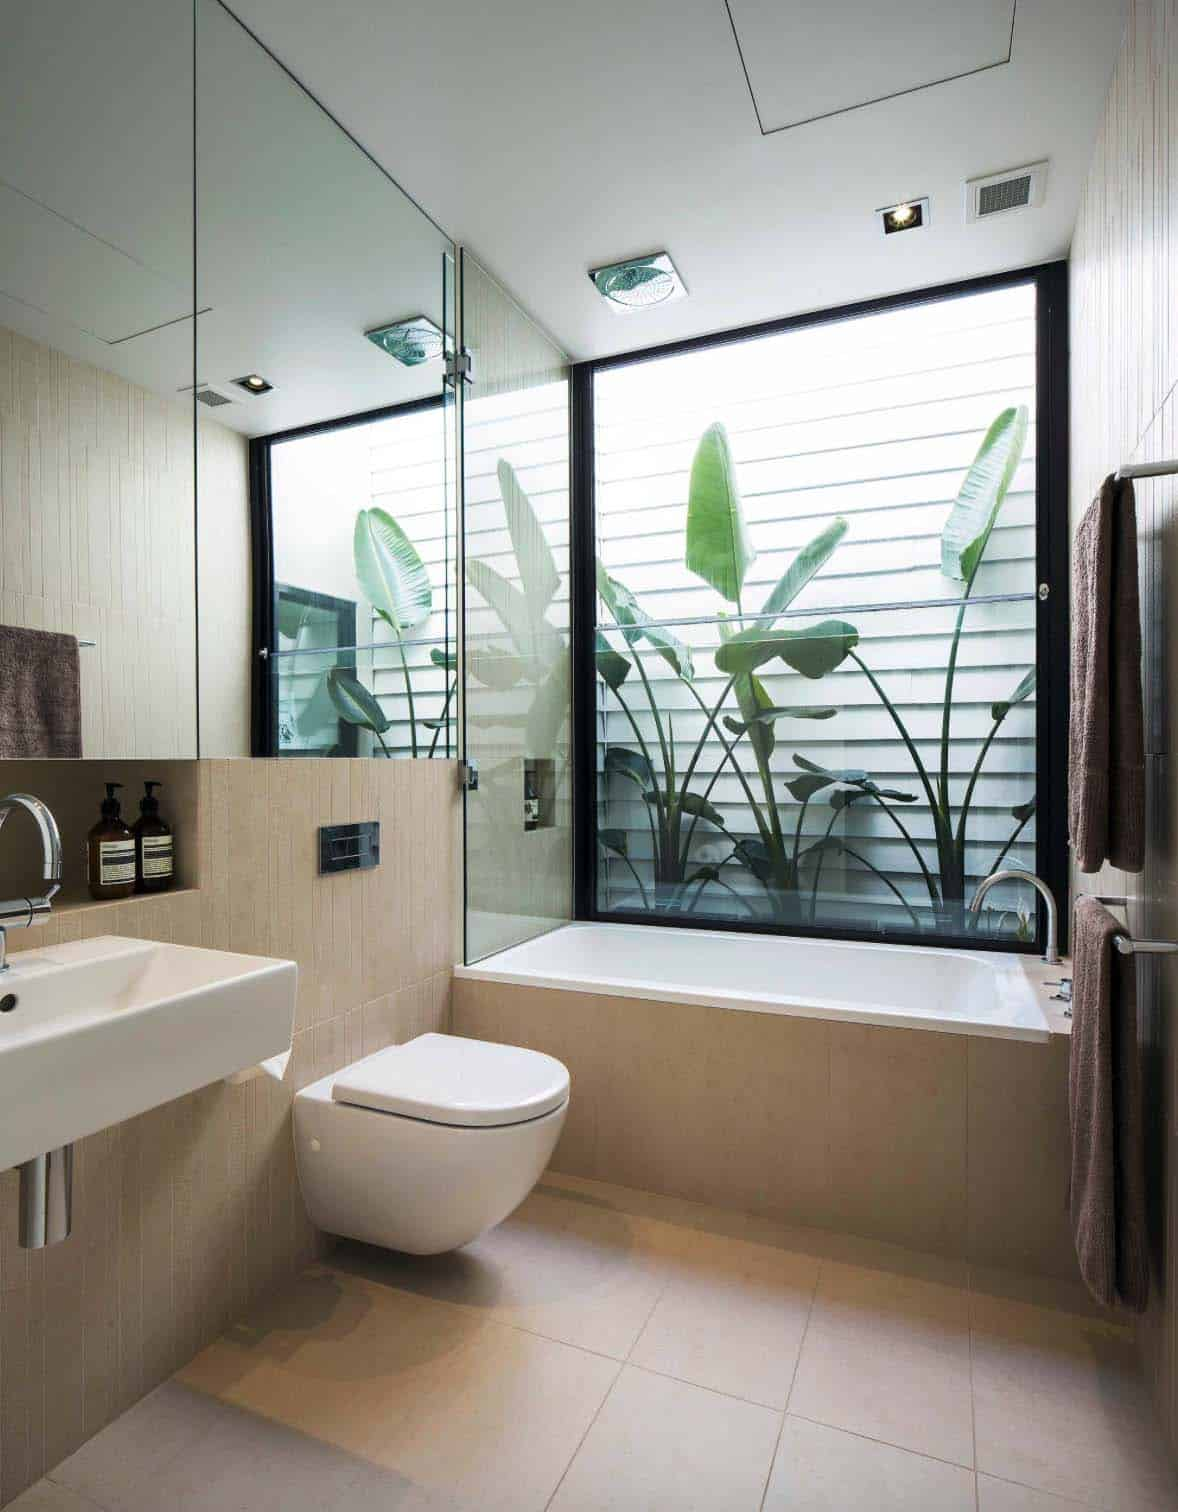 Inspiring Bathrooms Integrating Lush Gardens-06-1 Kindesign